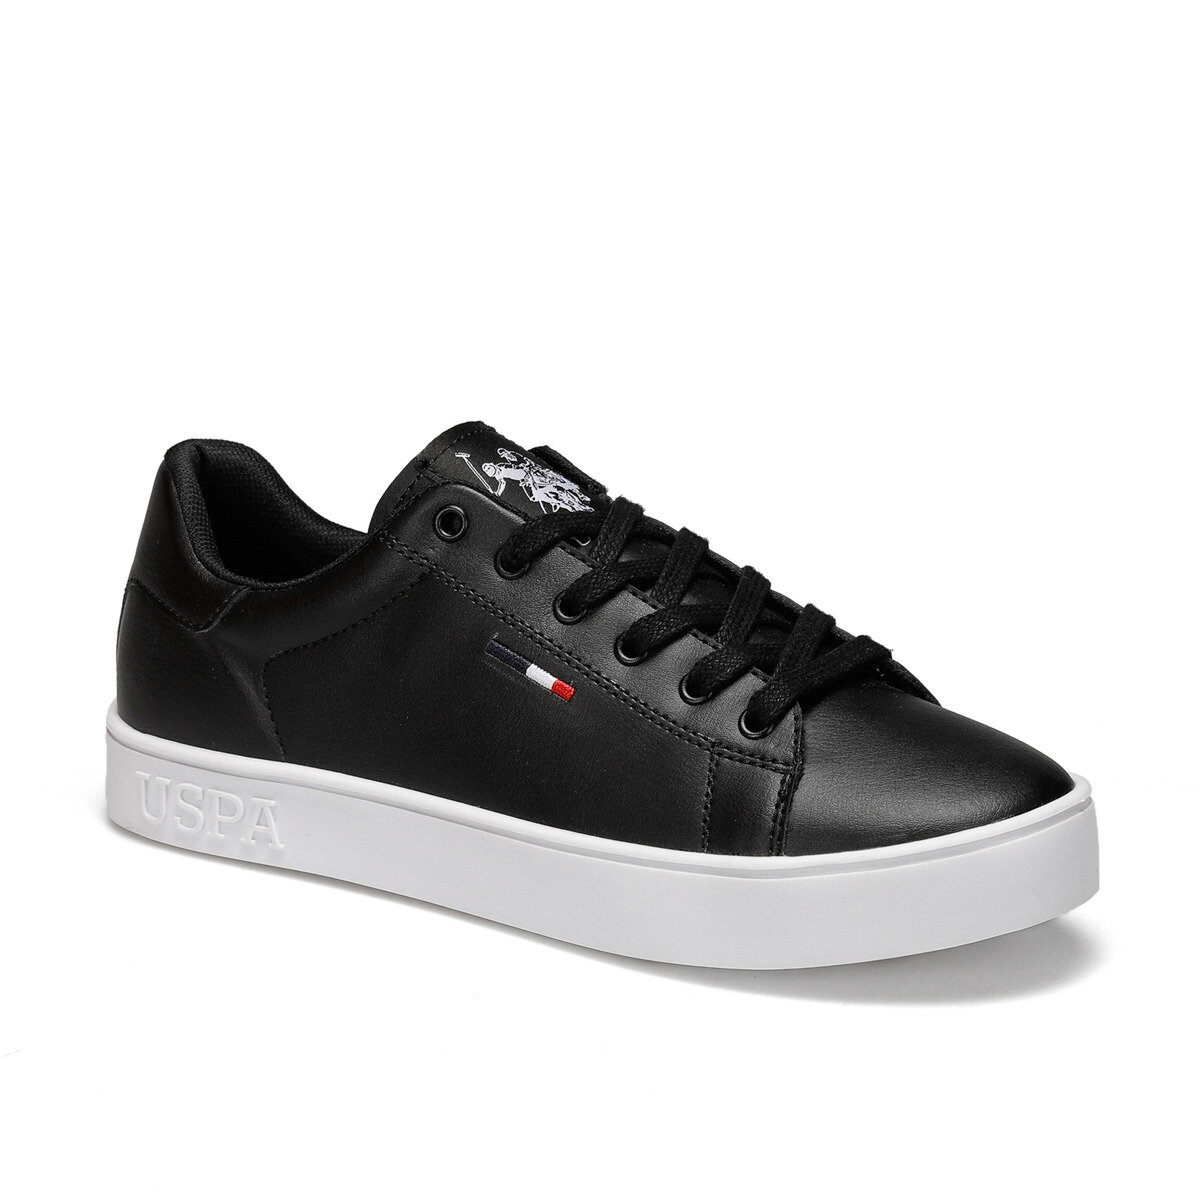 FLO FLEX Black Women 'S Sneaker Shoes U.S. POLO ASSN.